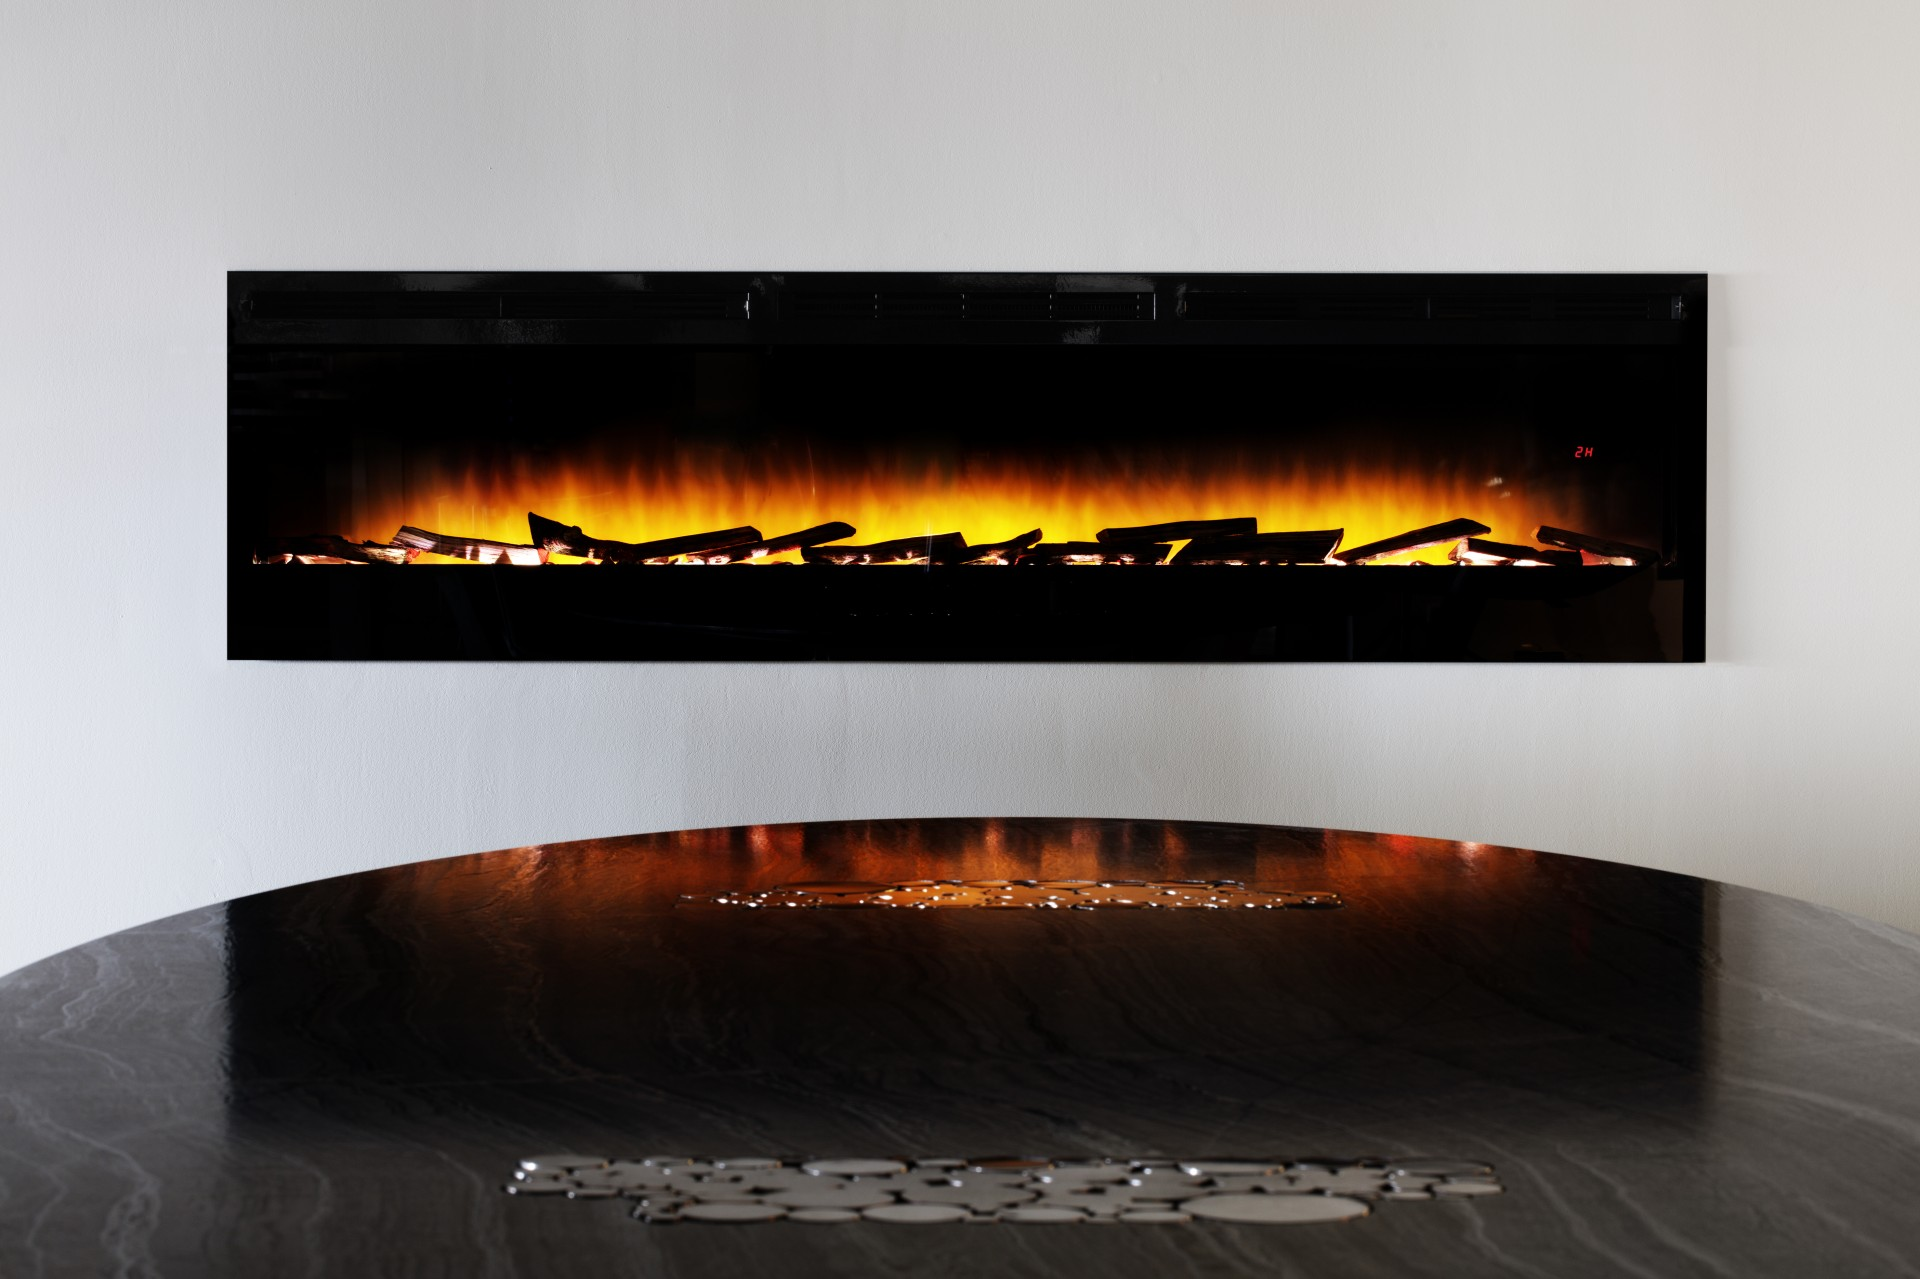 vapor by fire water nero design nerofiredesign fireplace find technology this on fireplaces more electric pin and